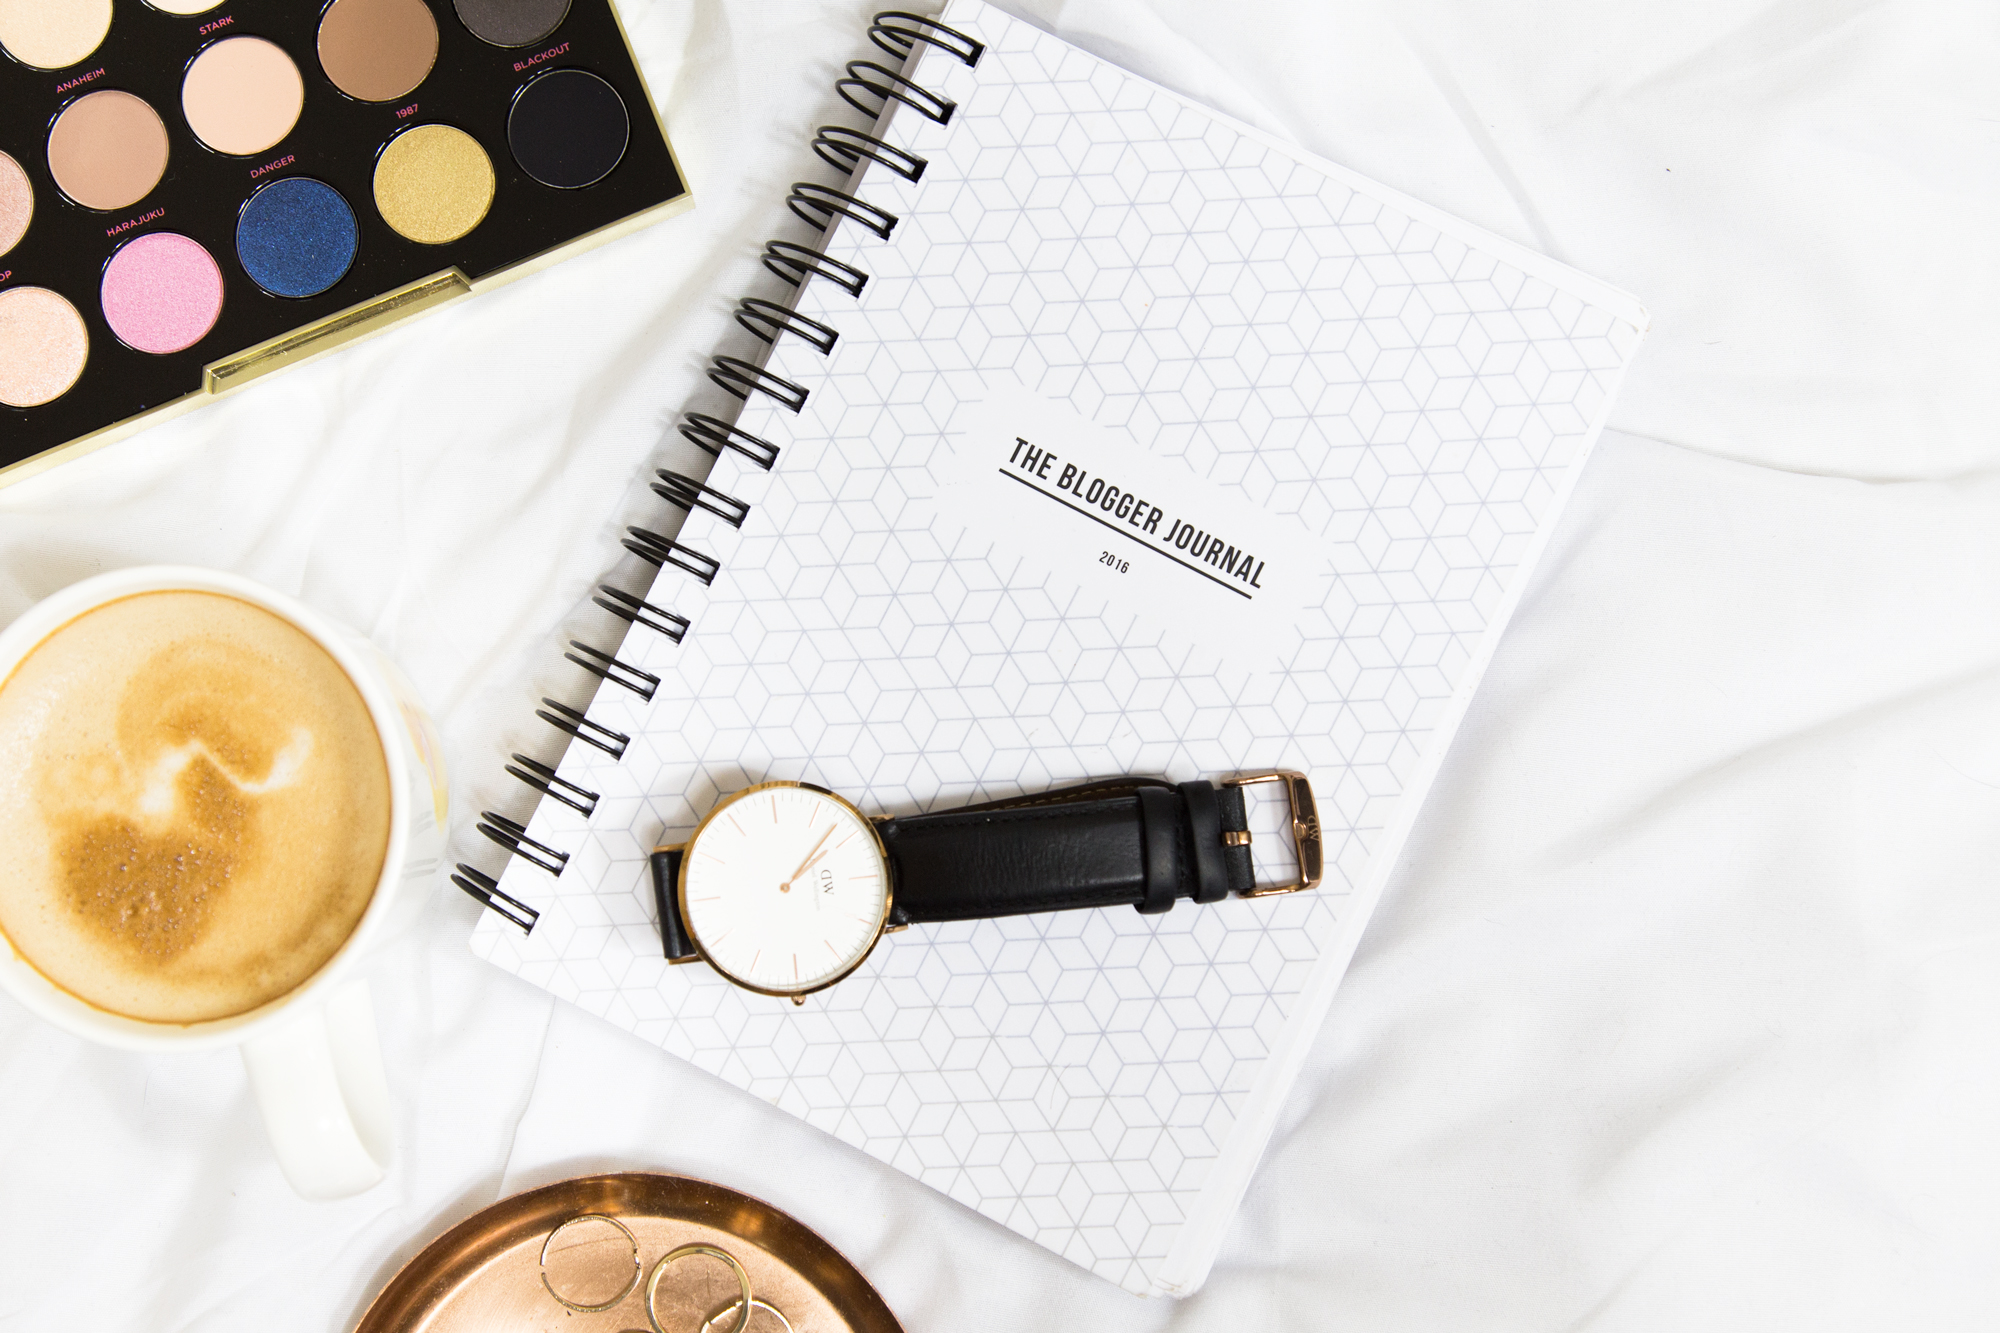 How to turn blogging into your job career